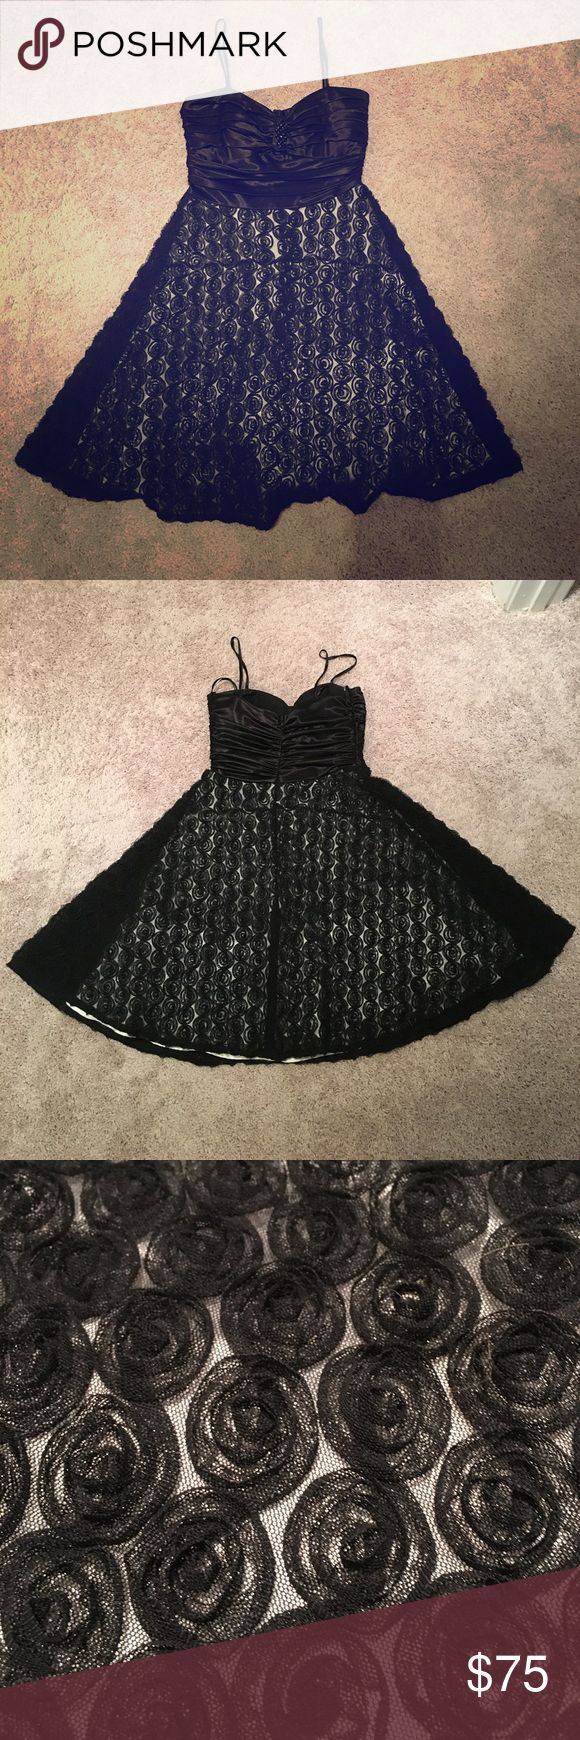 Black Cocktail Dress! Brand is Intrigue from Davids Bridal. The perfect special occasion little black dress with popular rose overlay. Small fit for a size 4.  I wore this once to a wedding. It has tulle underneath the skirt to make it poof out a little. Could be worn strapless if you just tuck the straps in. Length from where the strap connects, to the bottom of the skirt, is 27.5 inches. I shortened the straps but you could easily remove the thread to make them long again. See photo…